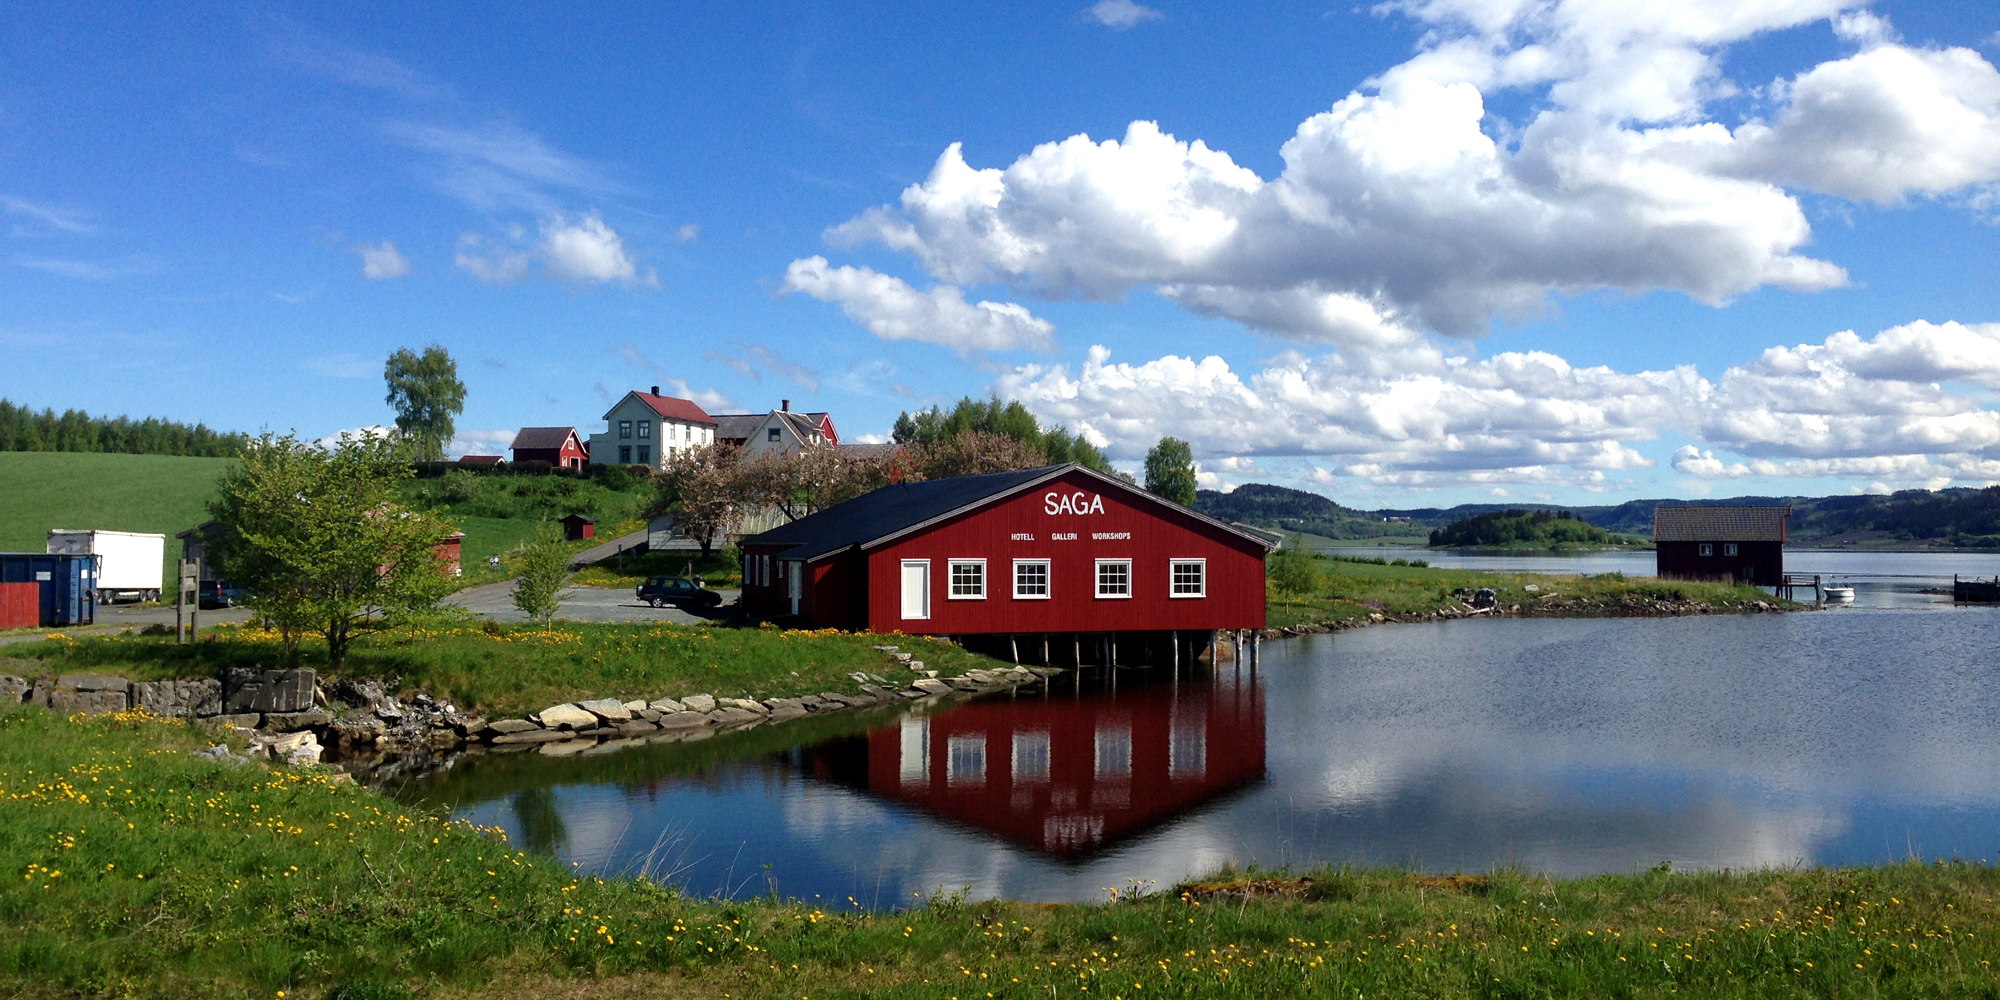 Saga - a creative centre in beautiful surroundings along the Golden Road in Inderøy. Copyright: Saga